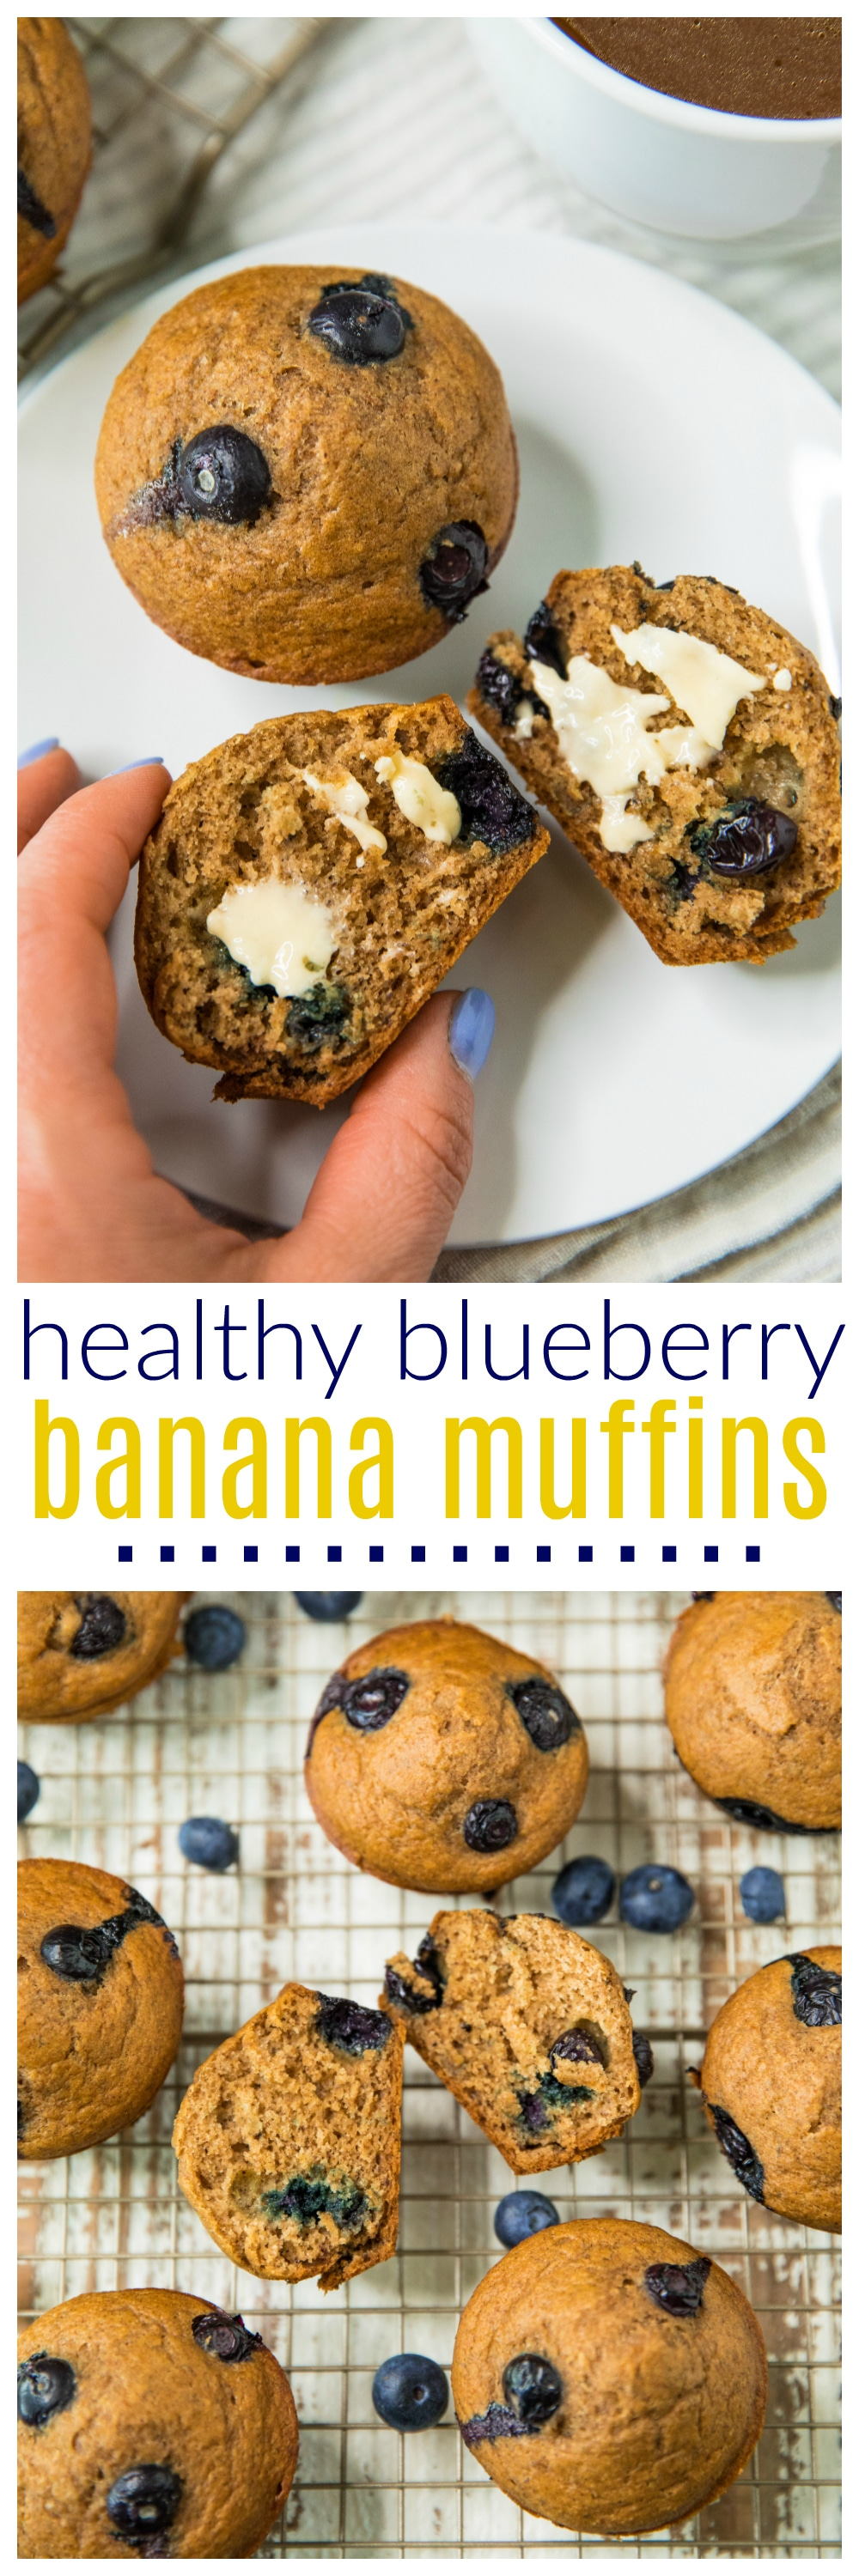 Simple to make and family friendly, these Healthy Blueberry Banana Muffins are moist, sweet and quickly becoming a breakfast staple in my household. Give them a try for yourself - I promise you're going to want to make them again and again!